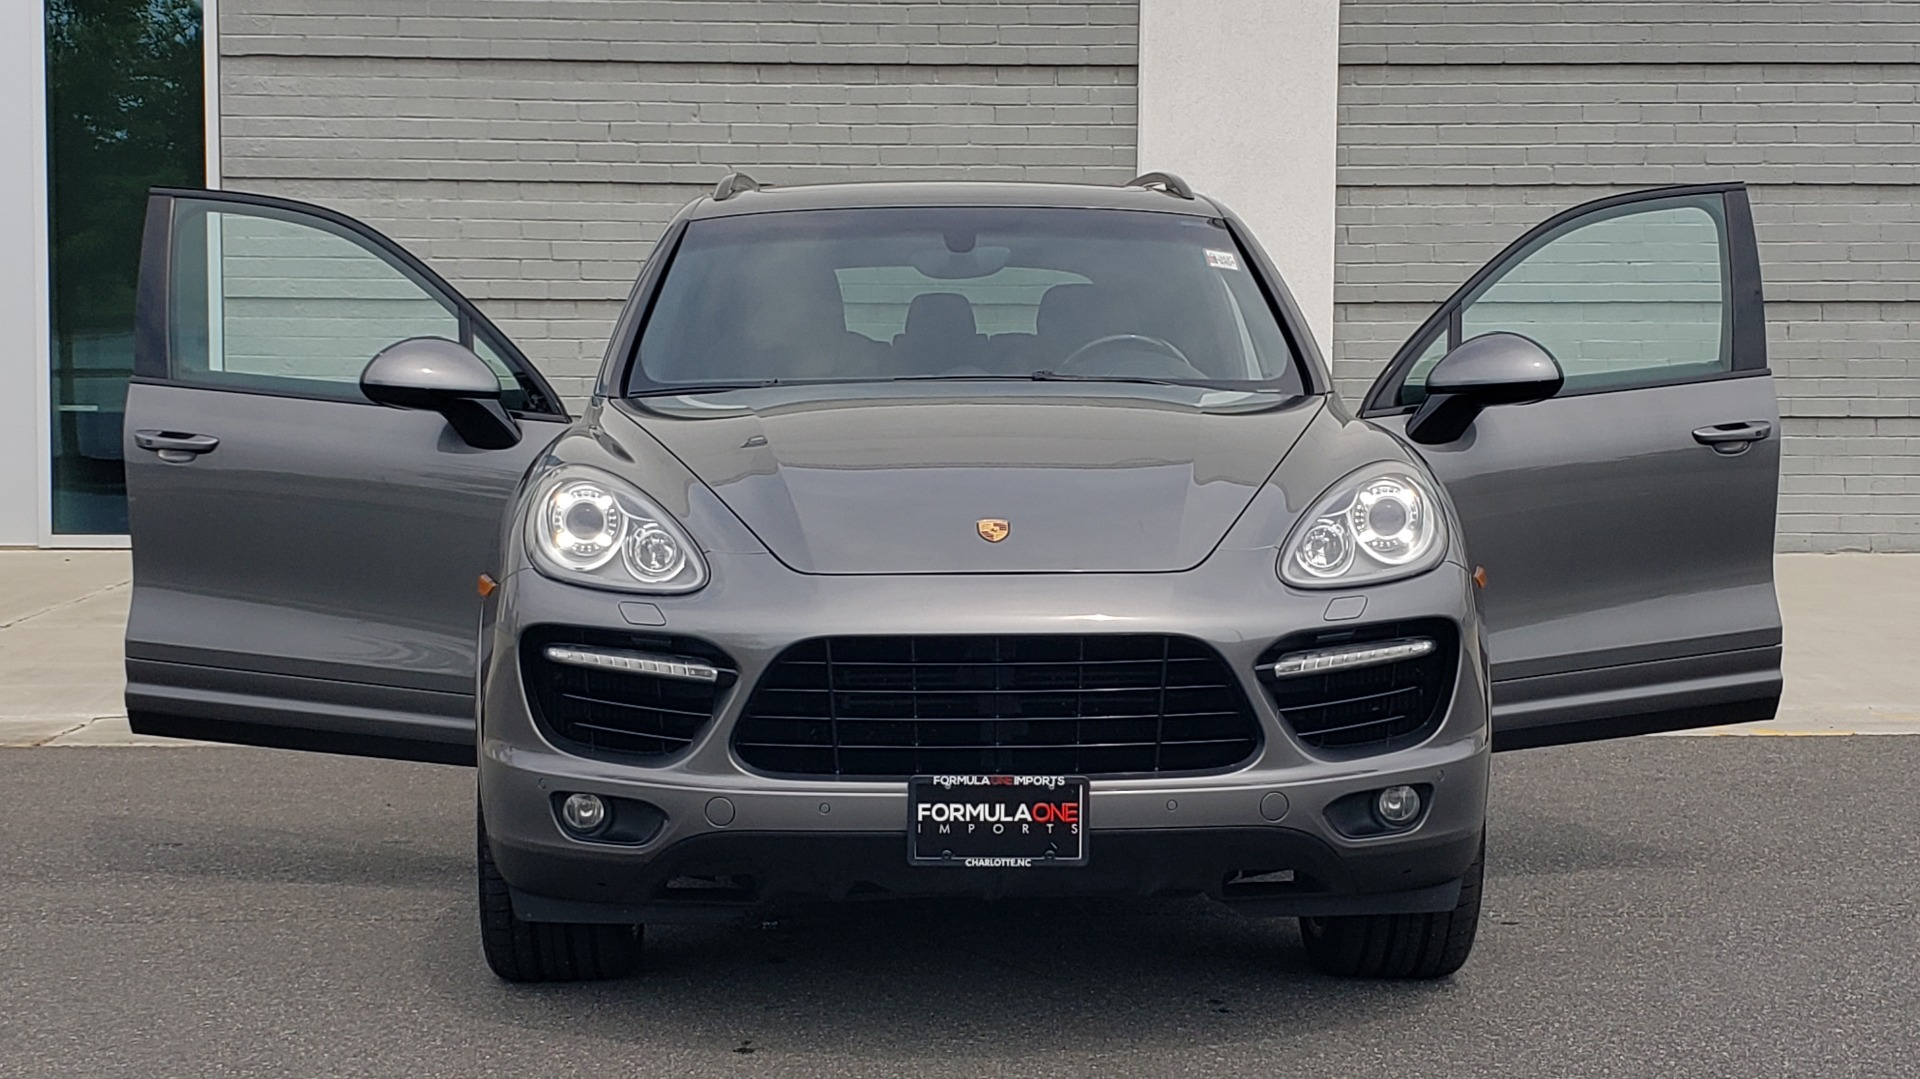 Used 2014 Porsche CAYENNE TURBO S / AWD / NAV / BOSE / PANO-ROOF / LCA / REARVIEW for sale Sold at Formula Imports in Charlotte NC 28227 25